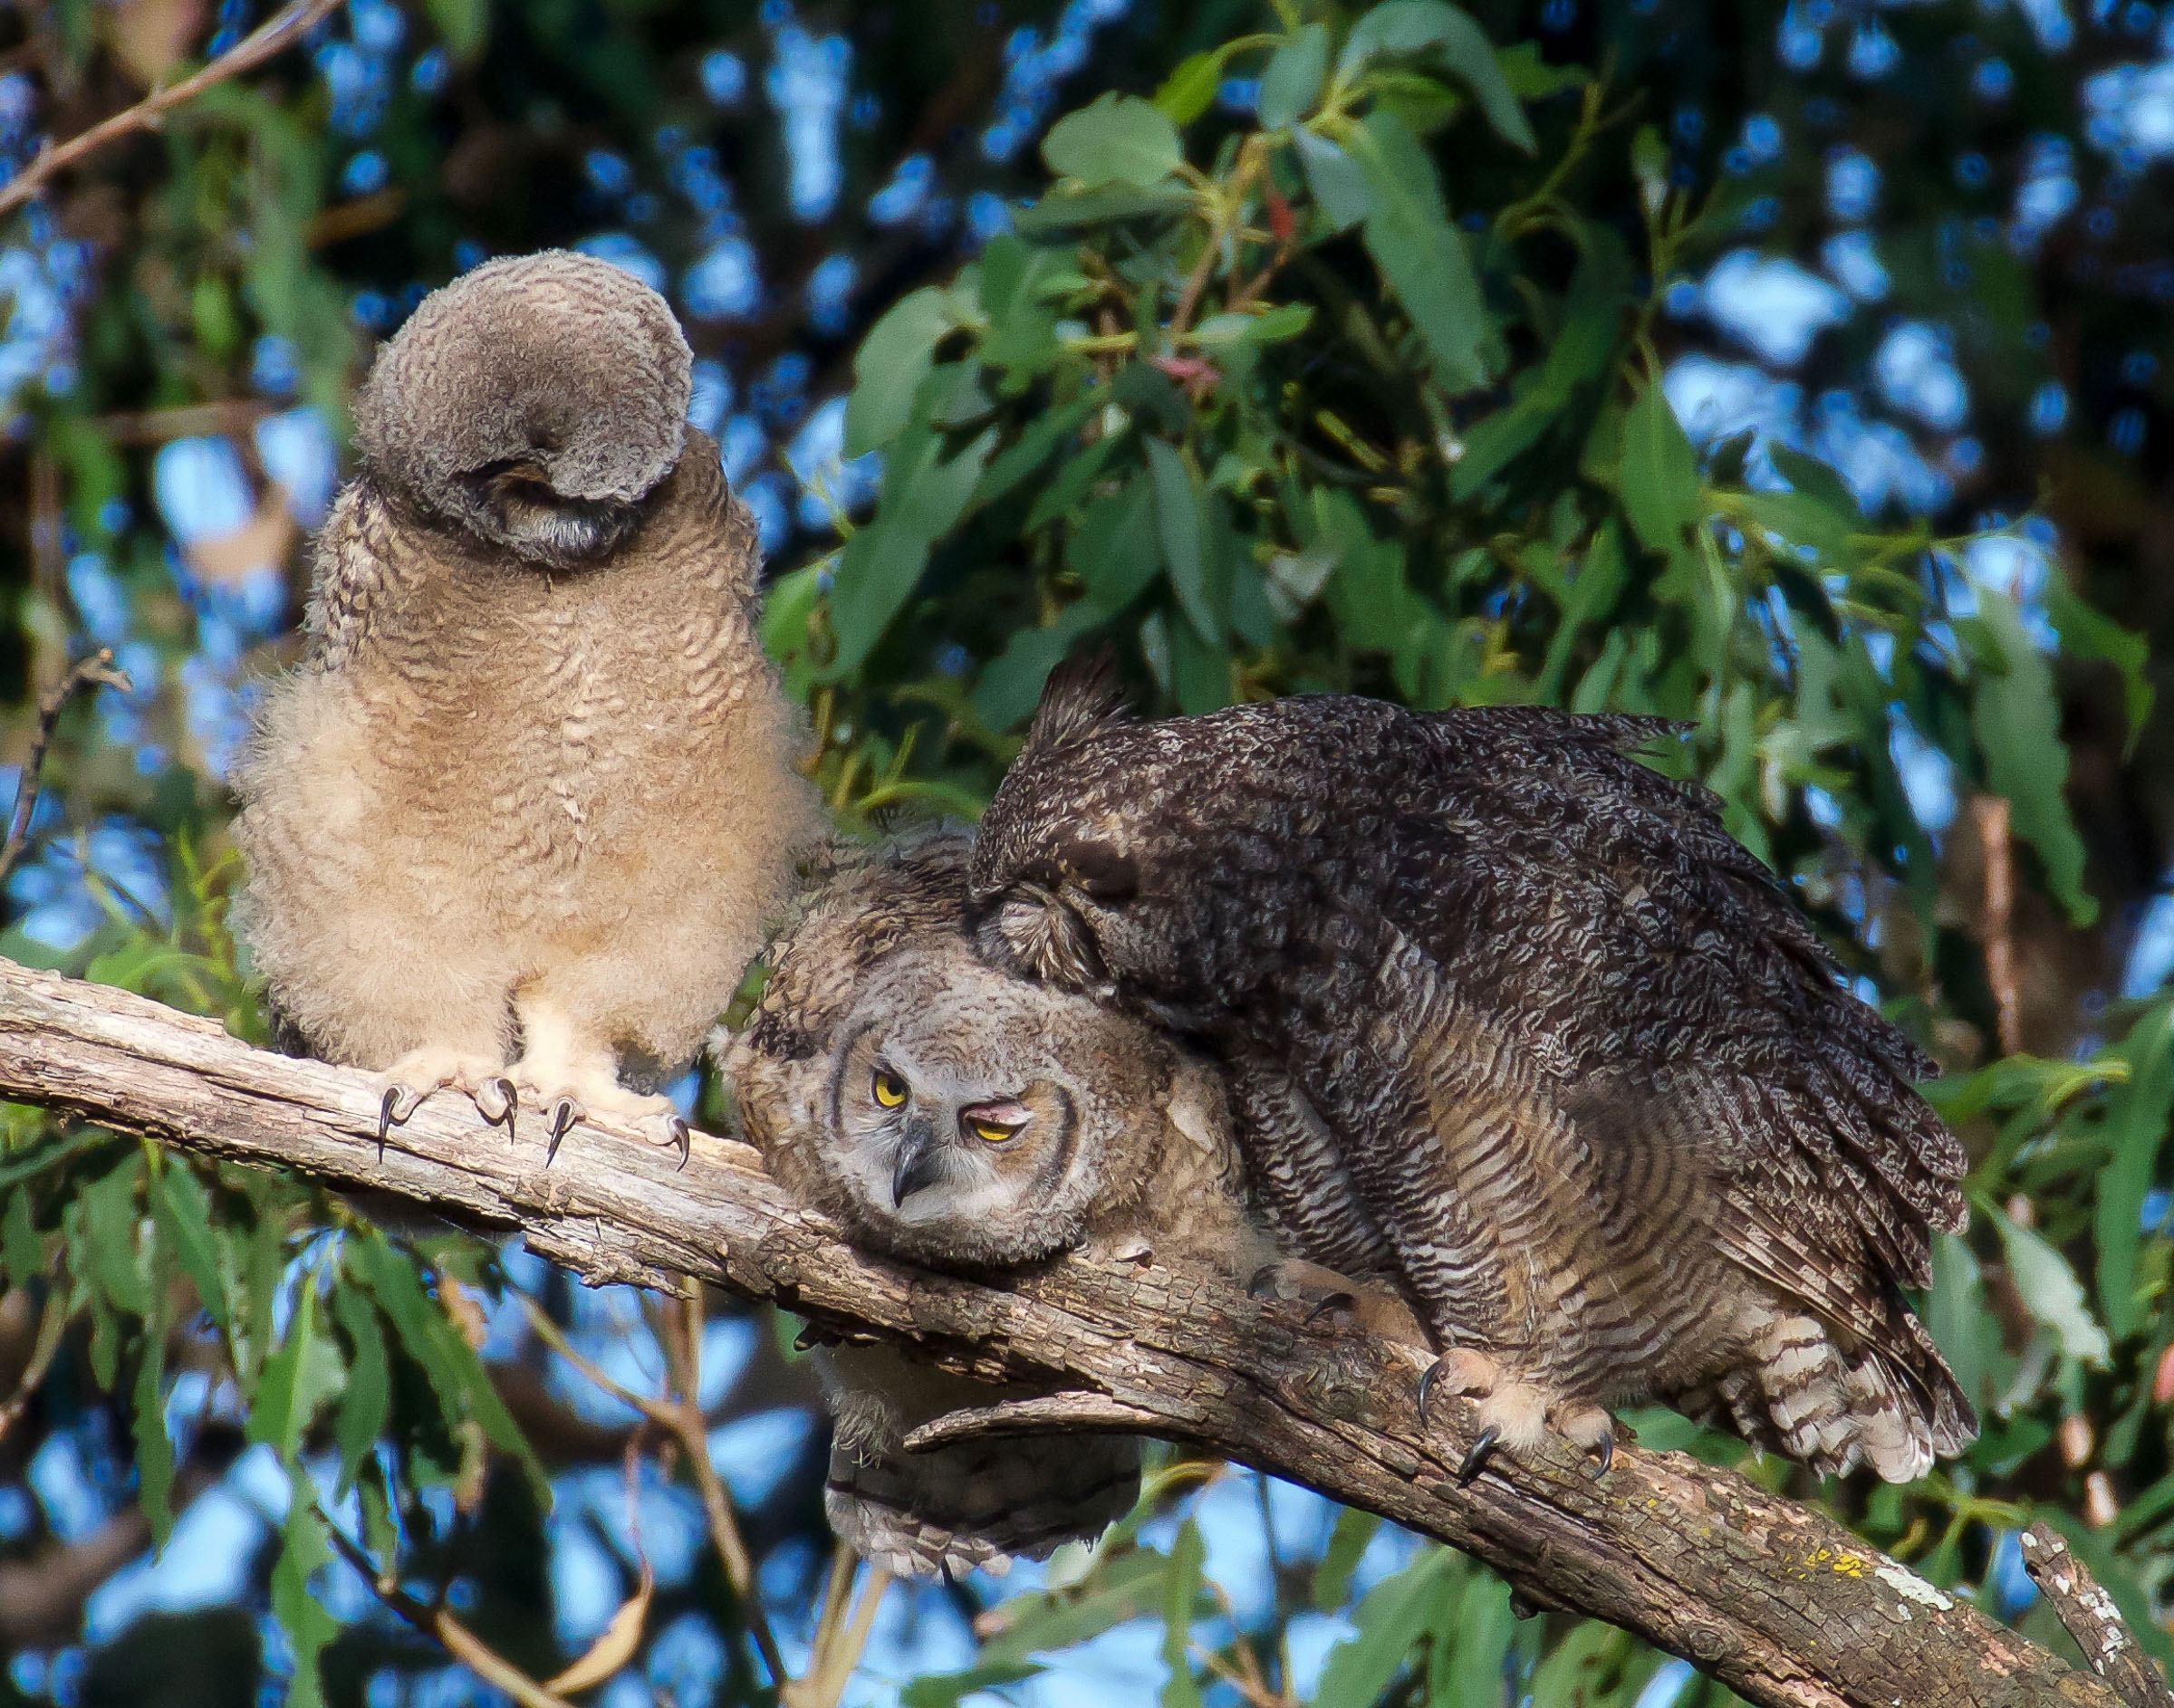 mother-great-horned-owl-grooming-owlets-9.jpg